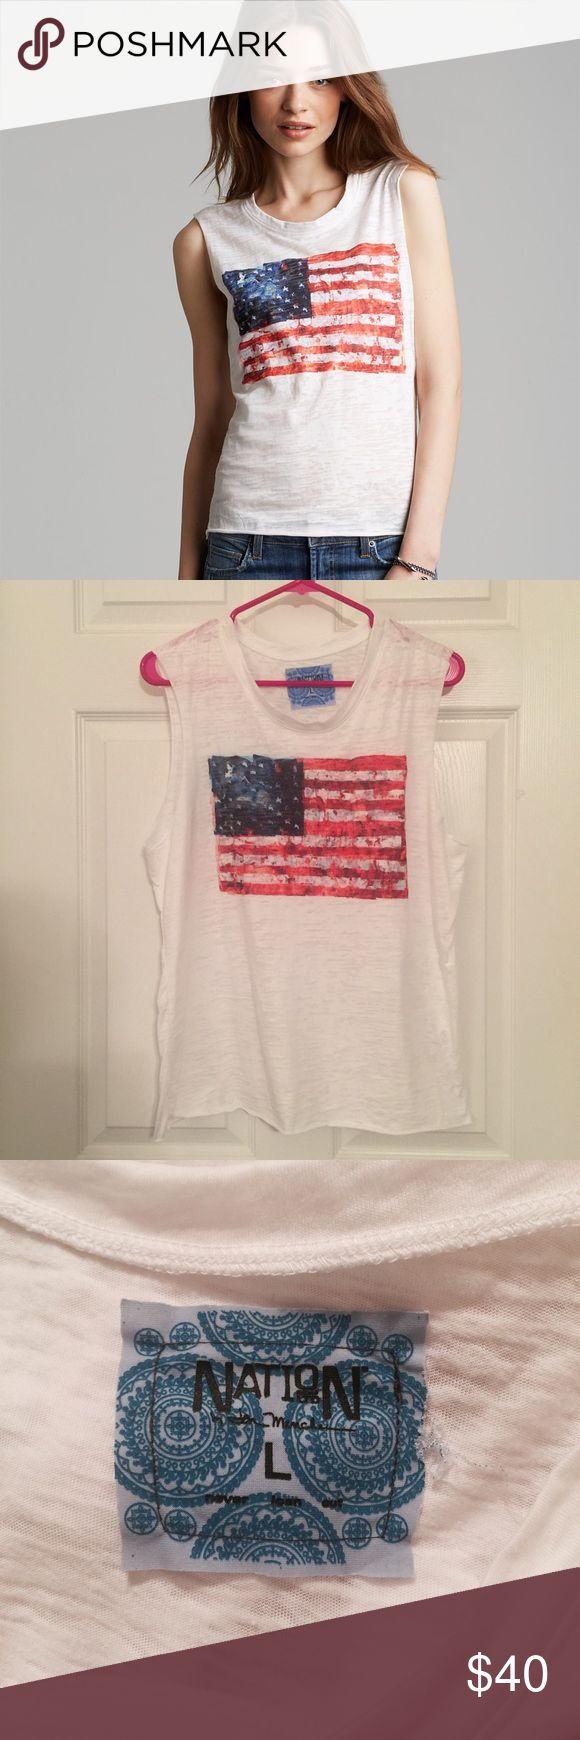 NWOT Nation Ltd American Flag Tank NWOT awesome American Flag tank by Nation Ltd. Super soft burnout fabric that you will love! Size large, runs true to size; no imperfections! Nation Ltd Tops Tank Tops